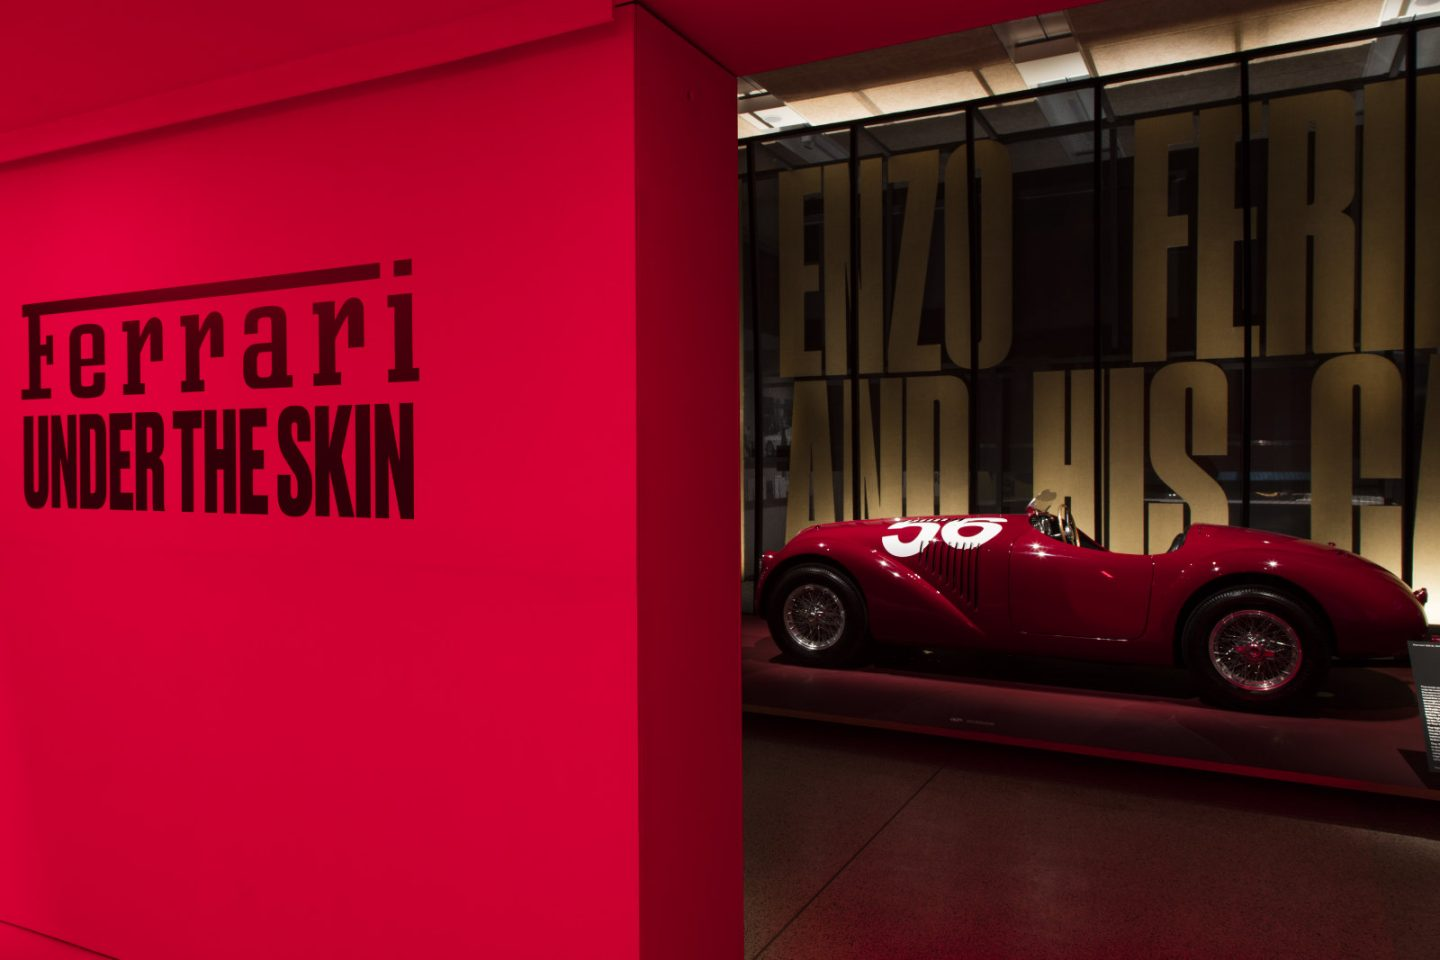 A glimpse into £140 million of Ferraris at the Design Museum's <i>Ferrari: under the Skin</i> exhibition